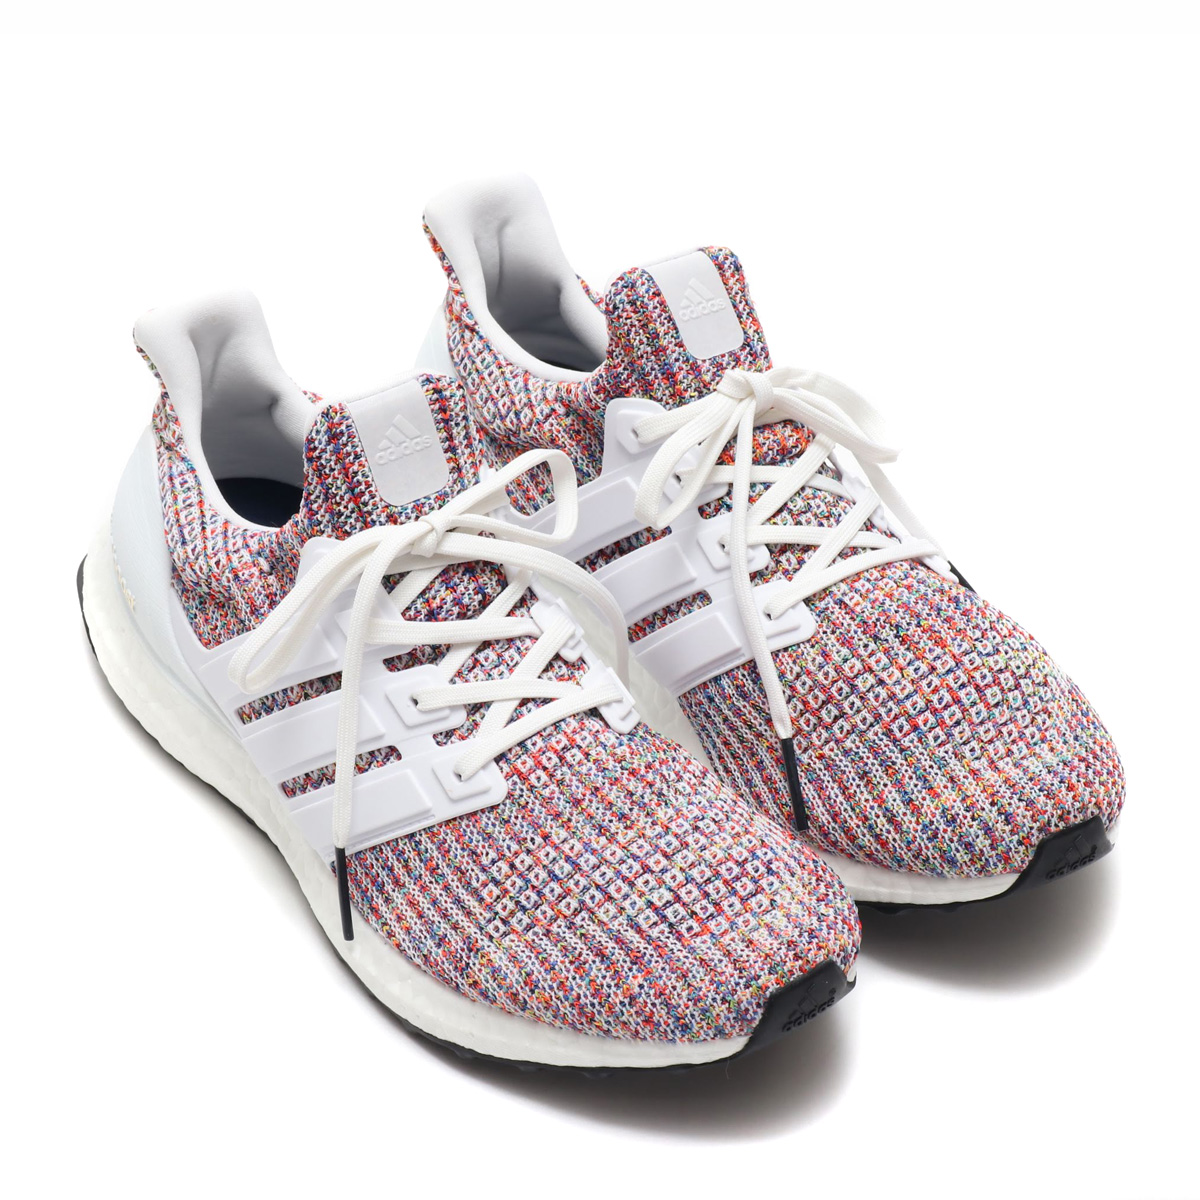 58547cec6 adidas UltraBOOST (Adidas ultra boost) running white   running white    college navy 18FW-I